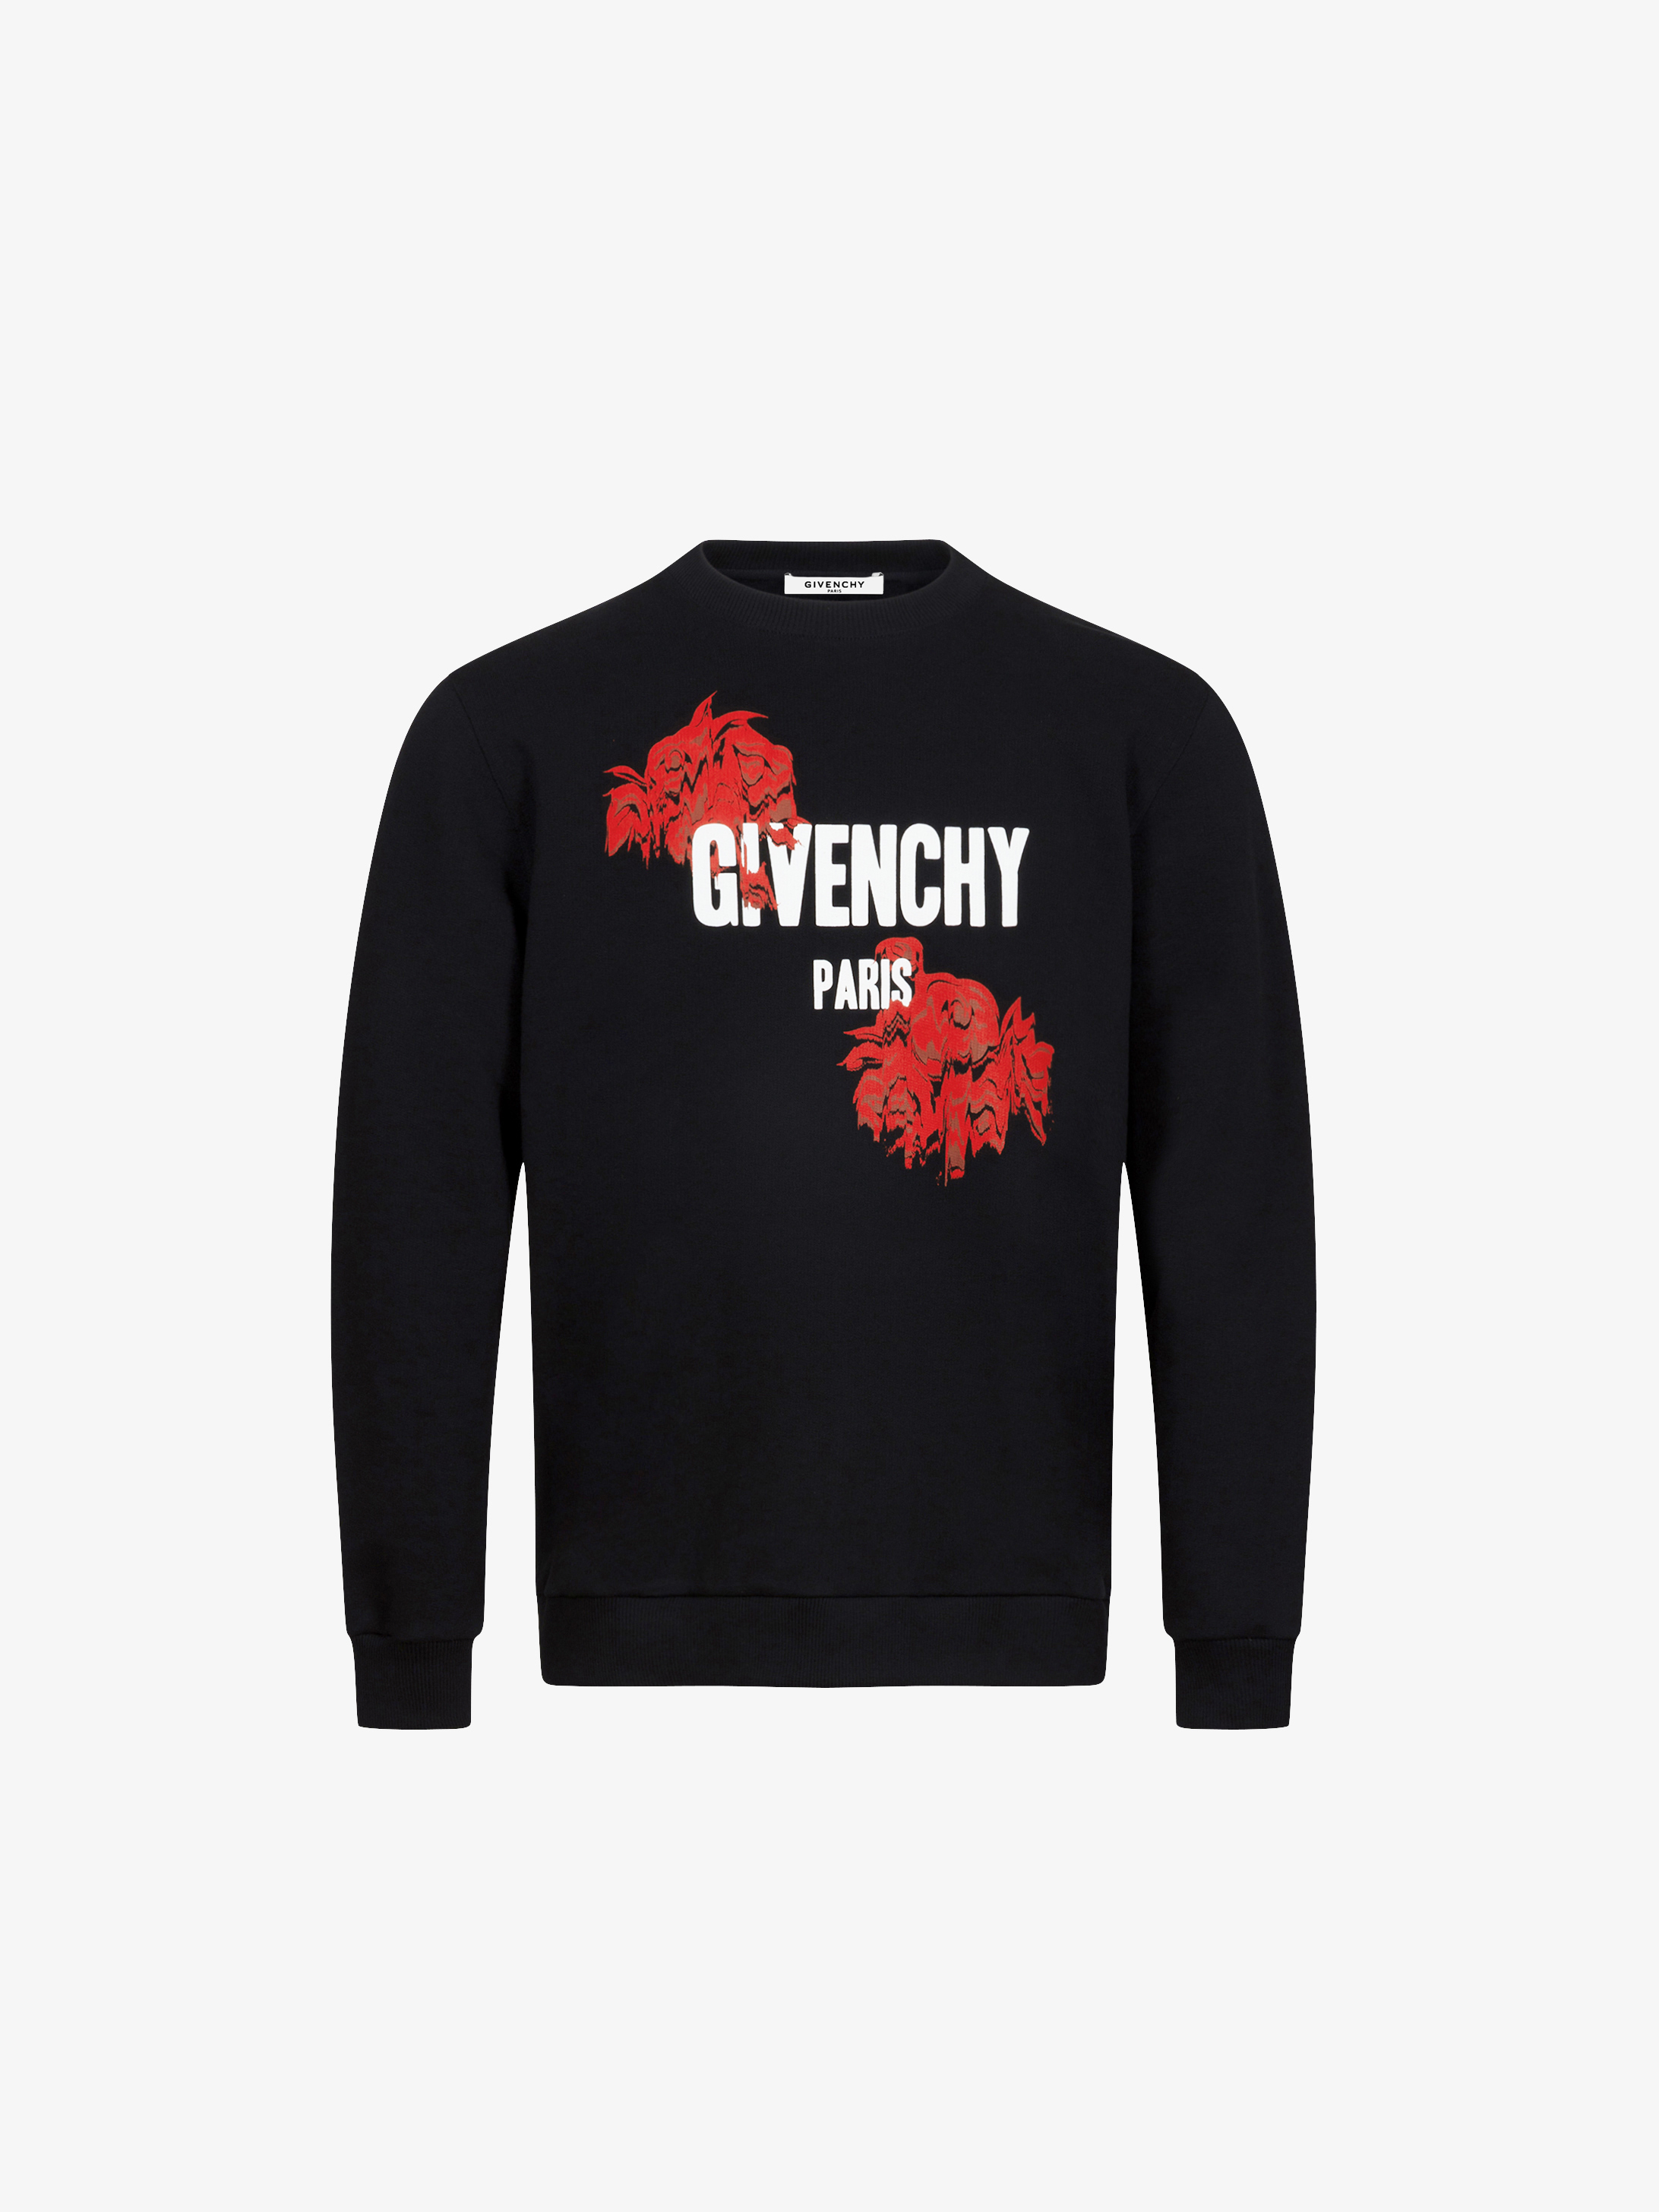 Roses & GIVENCHY PARIS printed Sweatshirt